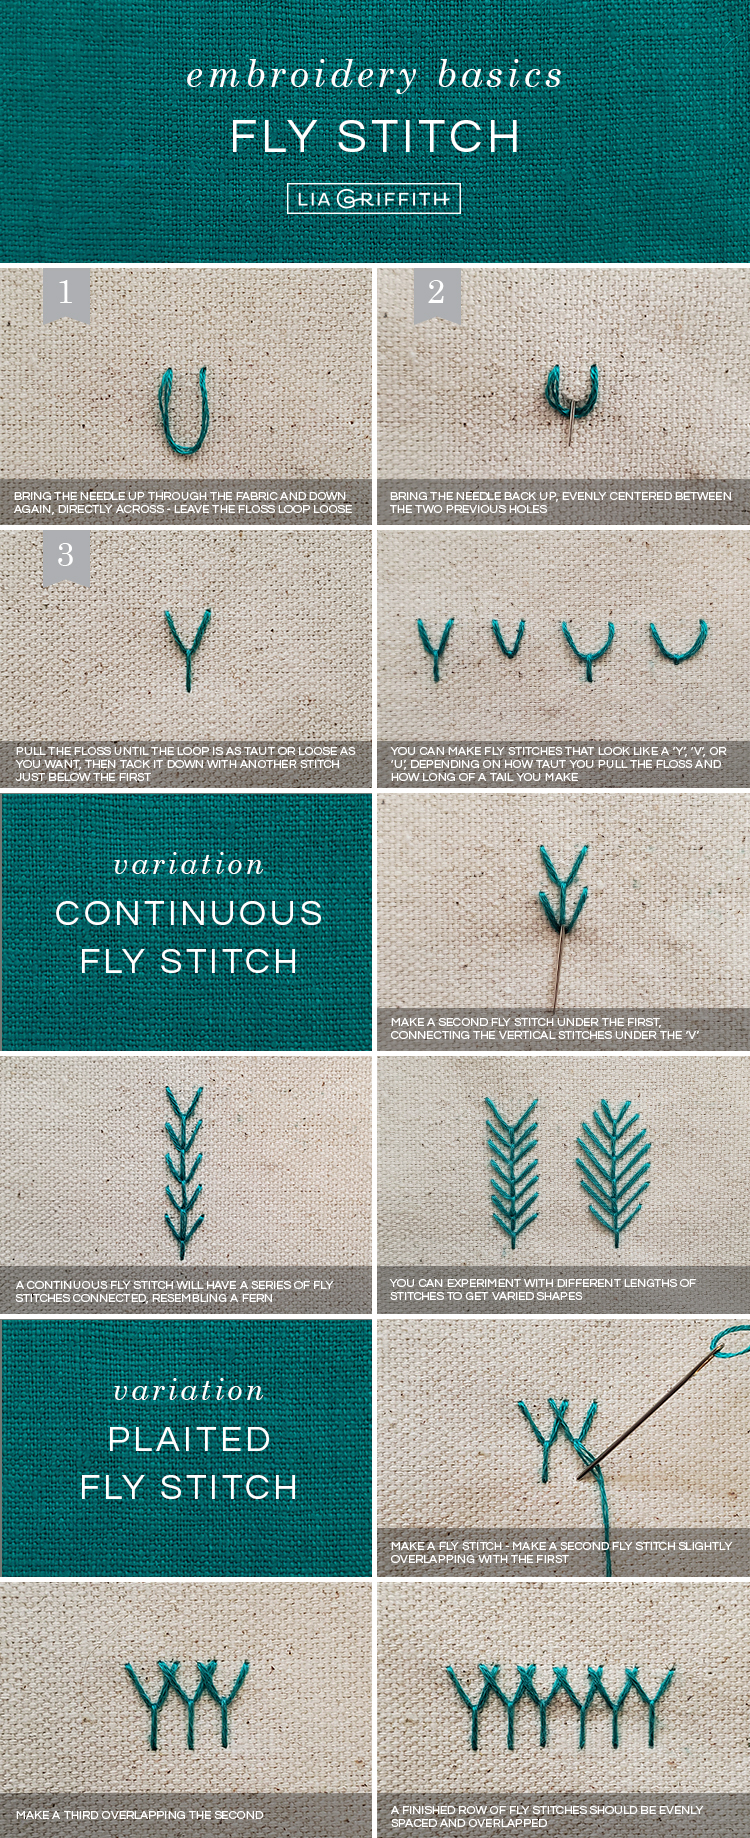 basic embroidery stitches: fly stitch tutorial